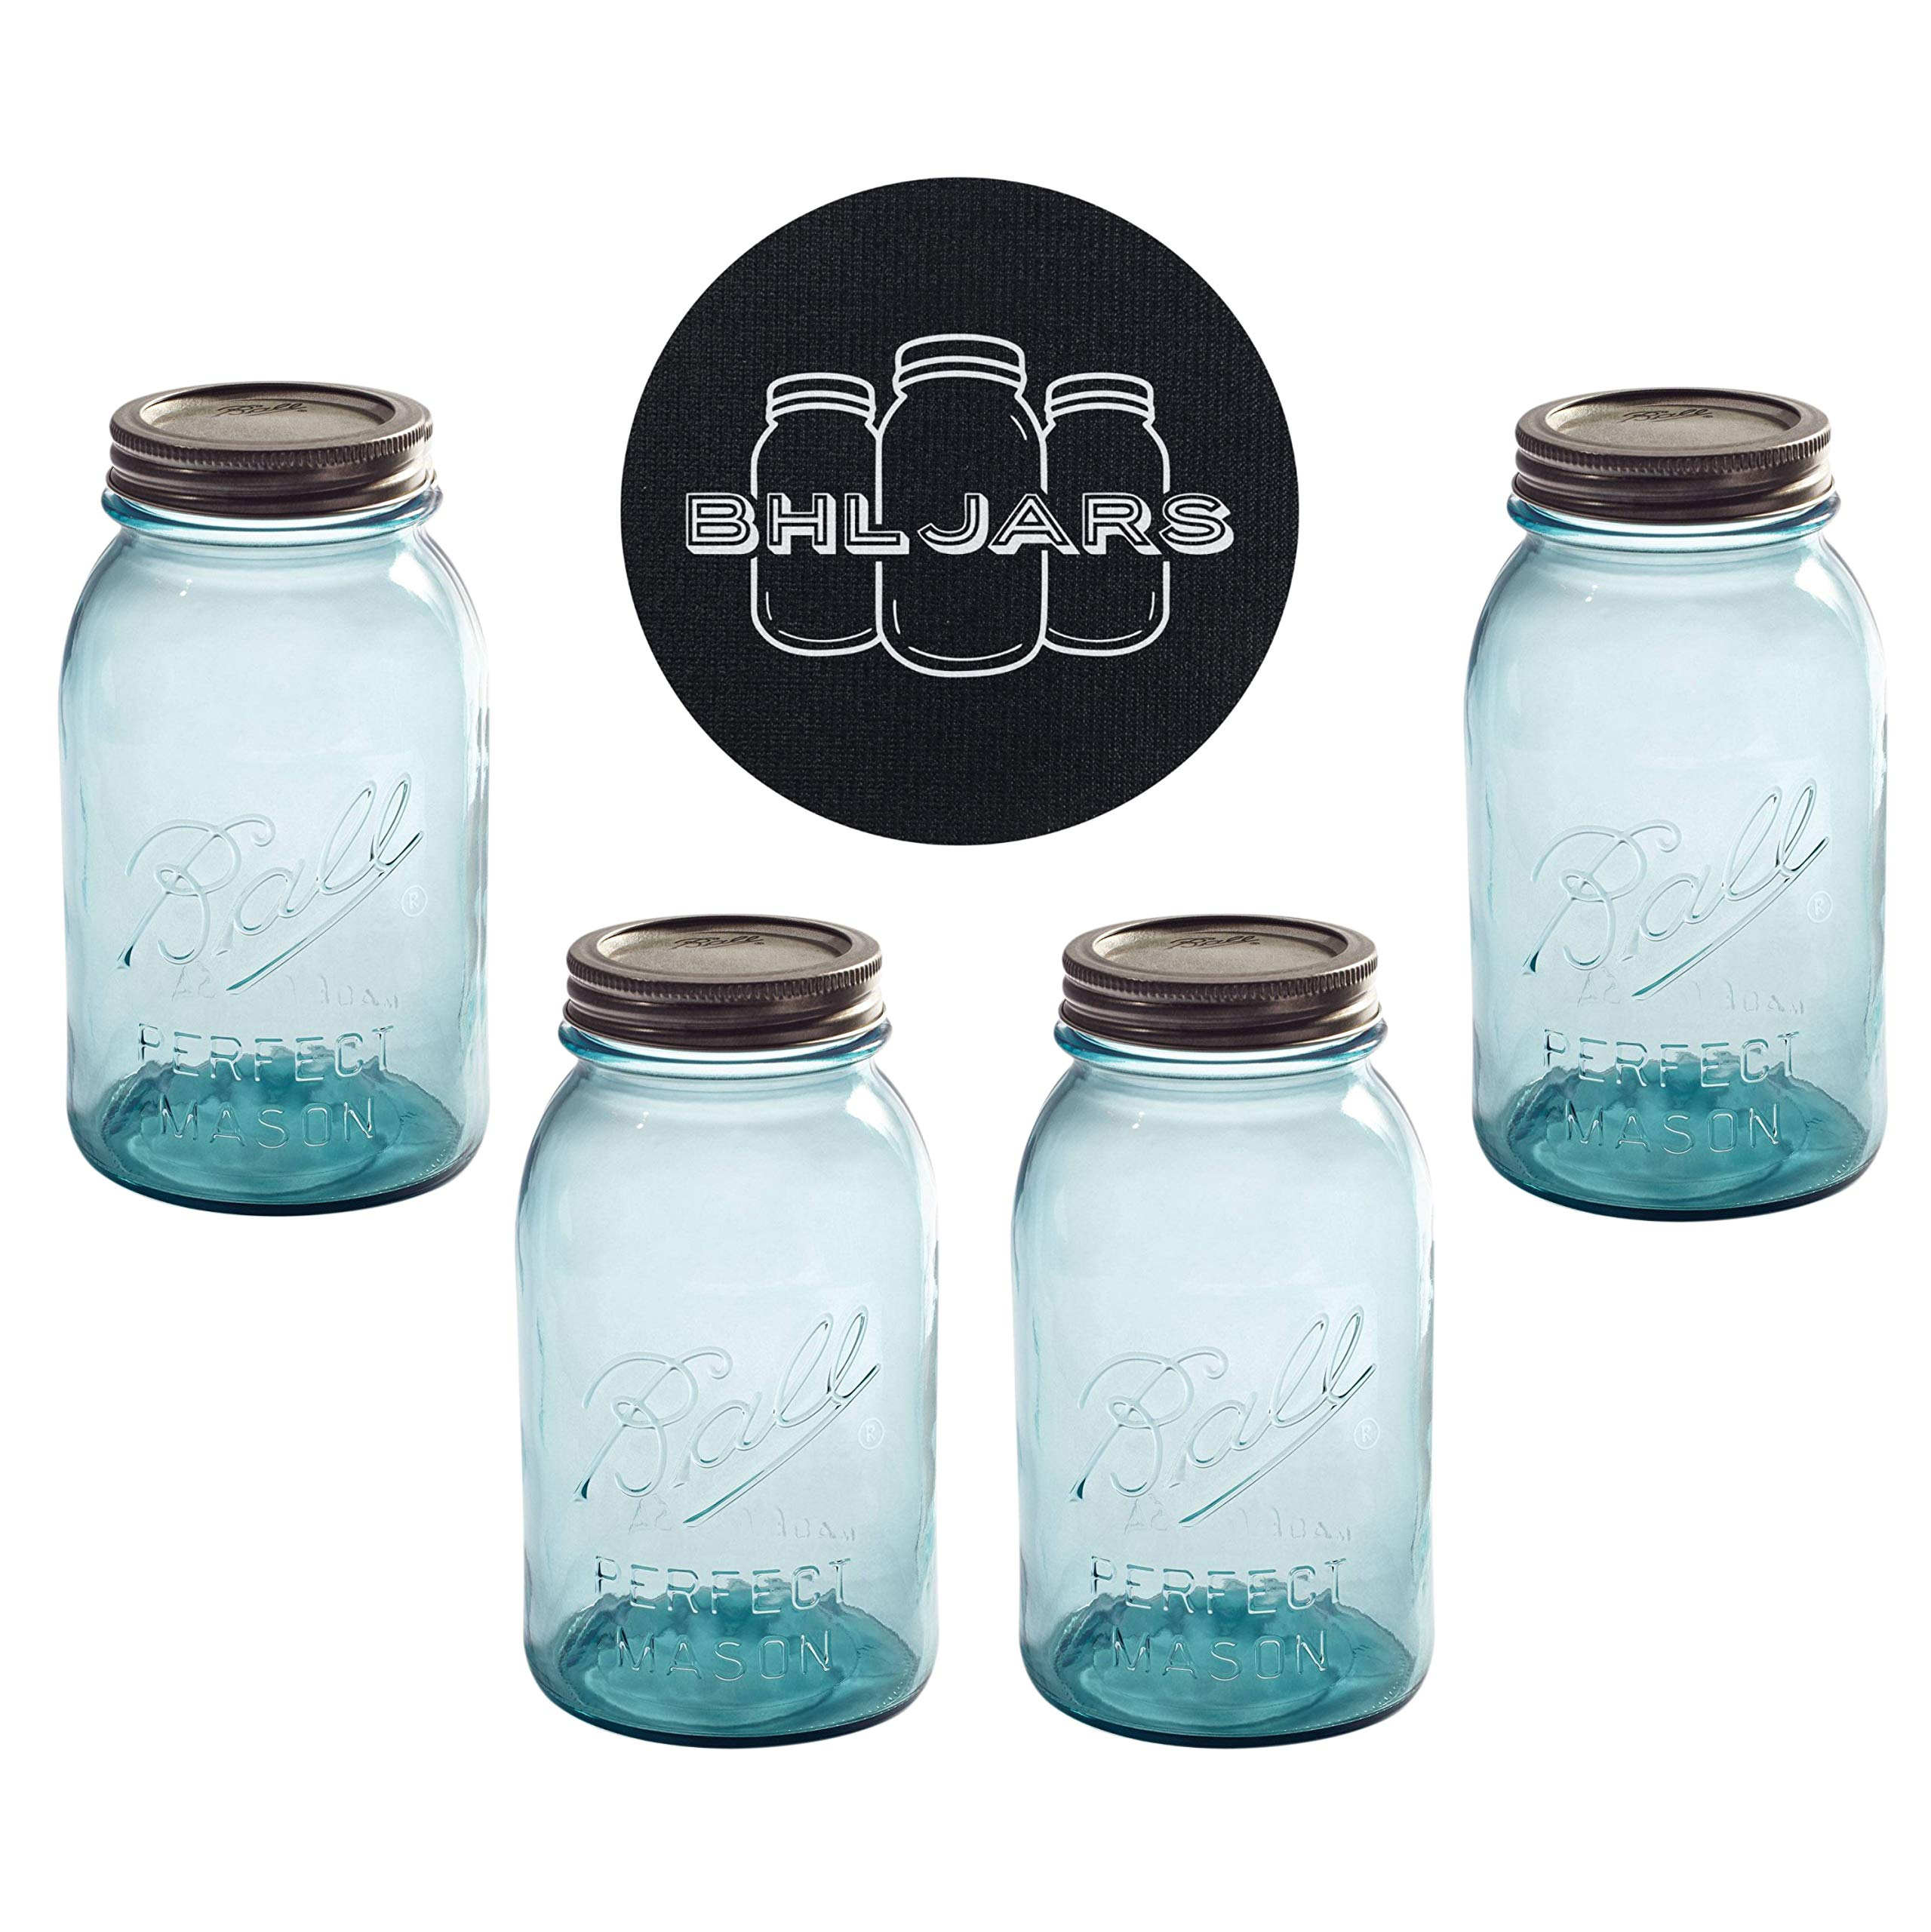 Ball Mason Jars 32 oz Regular Mouth Aqua Vintage Colored Glass Bundle with Non Slip Jar Opener- Set of 4 Quart Size Mason Jars - Canning Glass Jars with Lids